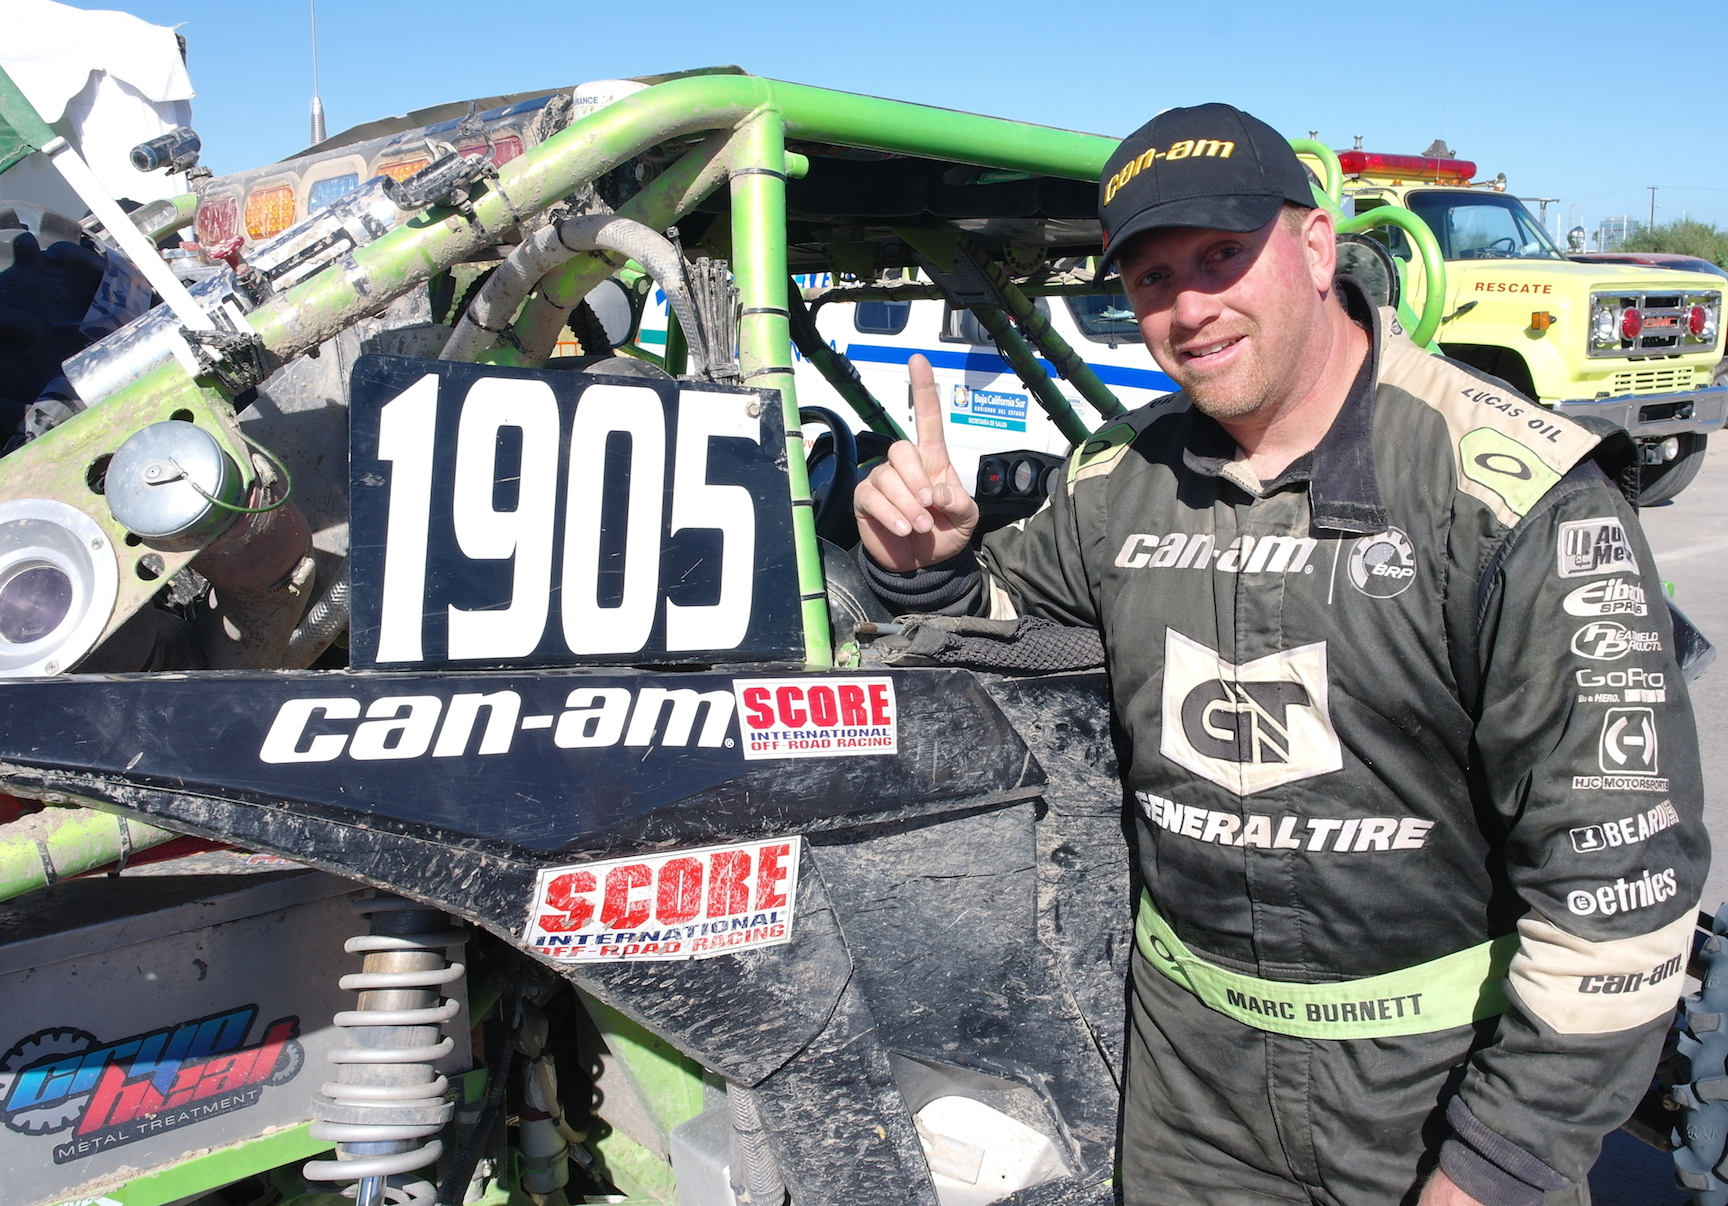 Marc Burnett, who also won two SCORE International Class 19 rounds this year, took sixth at the 2014 Tecate SCORE Baja 1000 desert endurance race in Mexico to capture the class championship. He drove all 1,275 miles behind the wheel of his No. 1905 MB Motorsports / Monster / Can-Am Maverick 1000R.